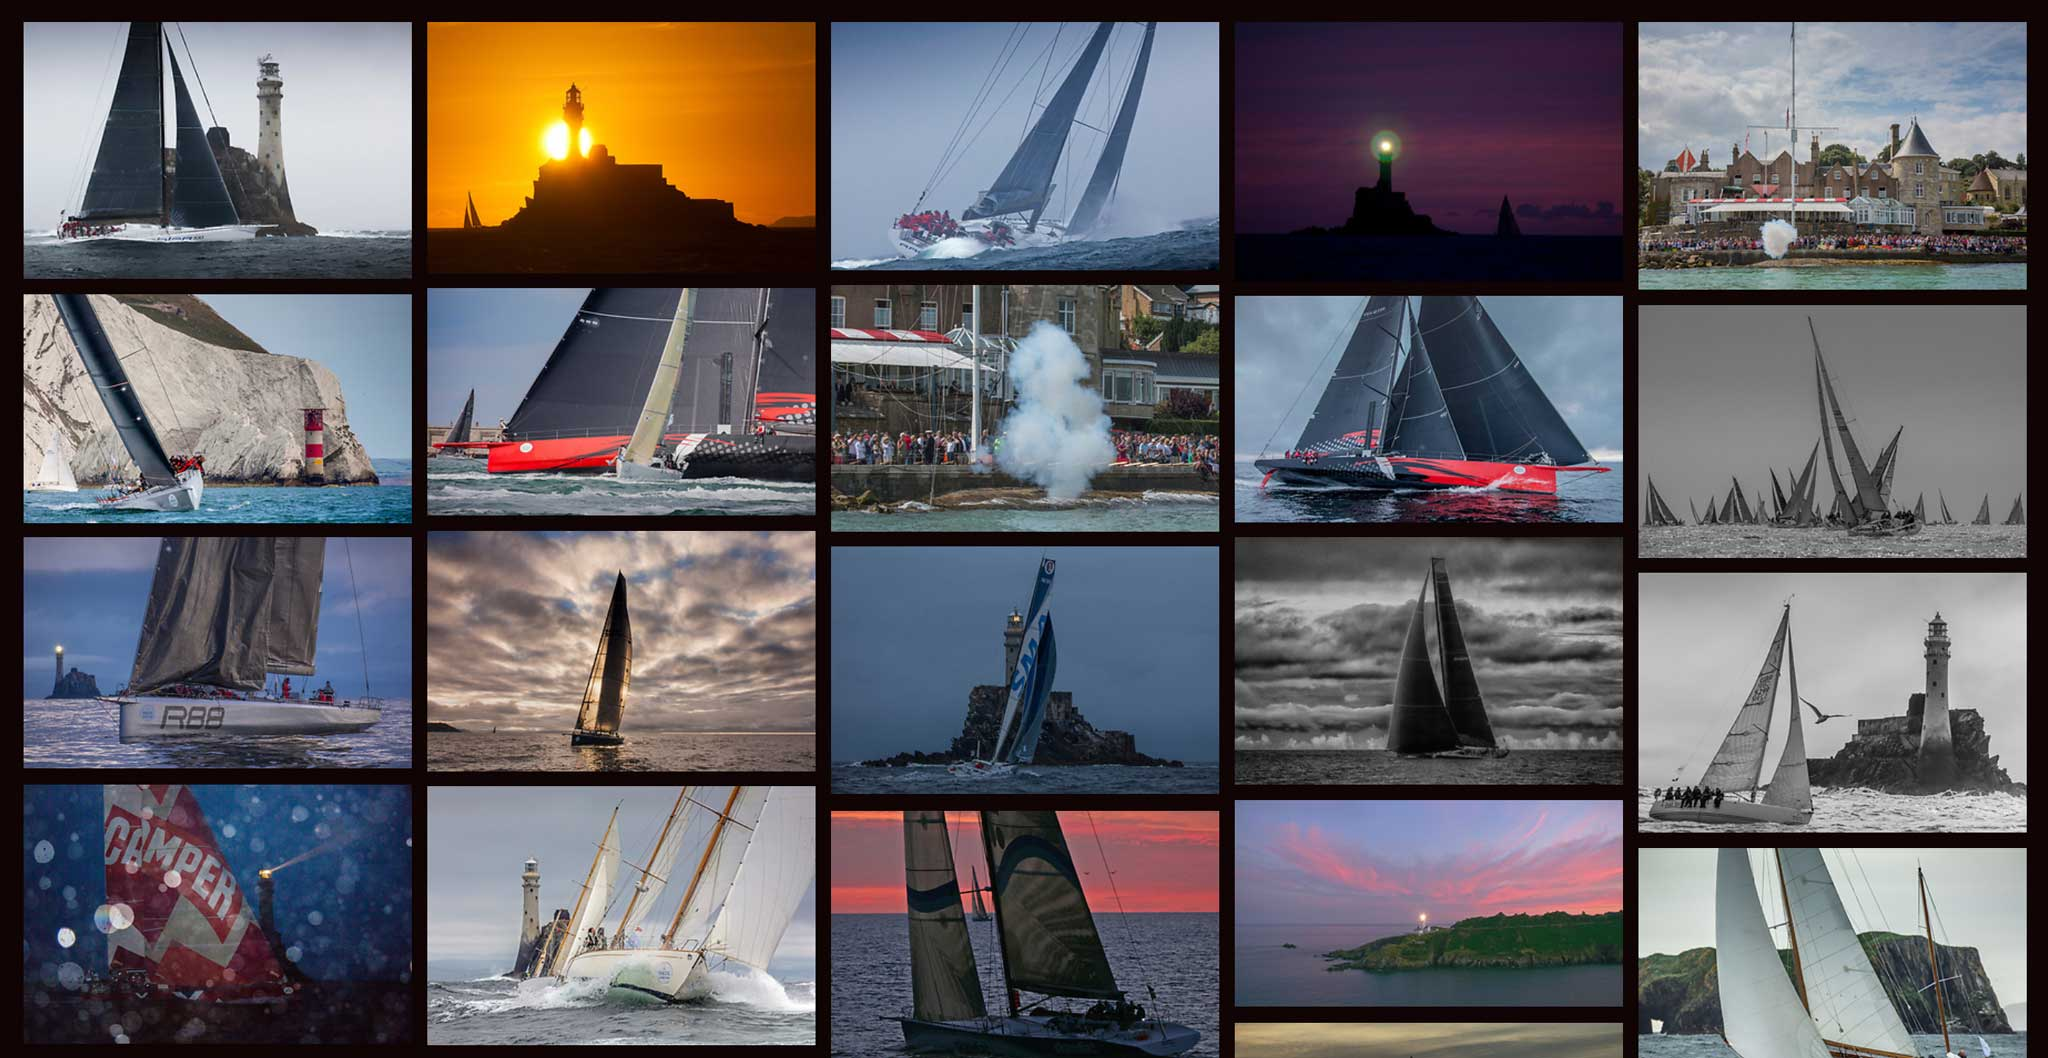 Daniel Forster – 48 Years of Yachting Photography